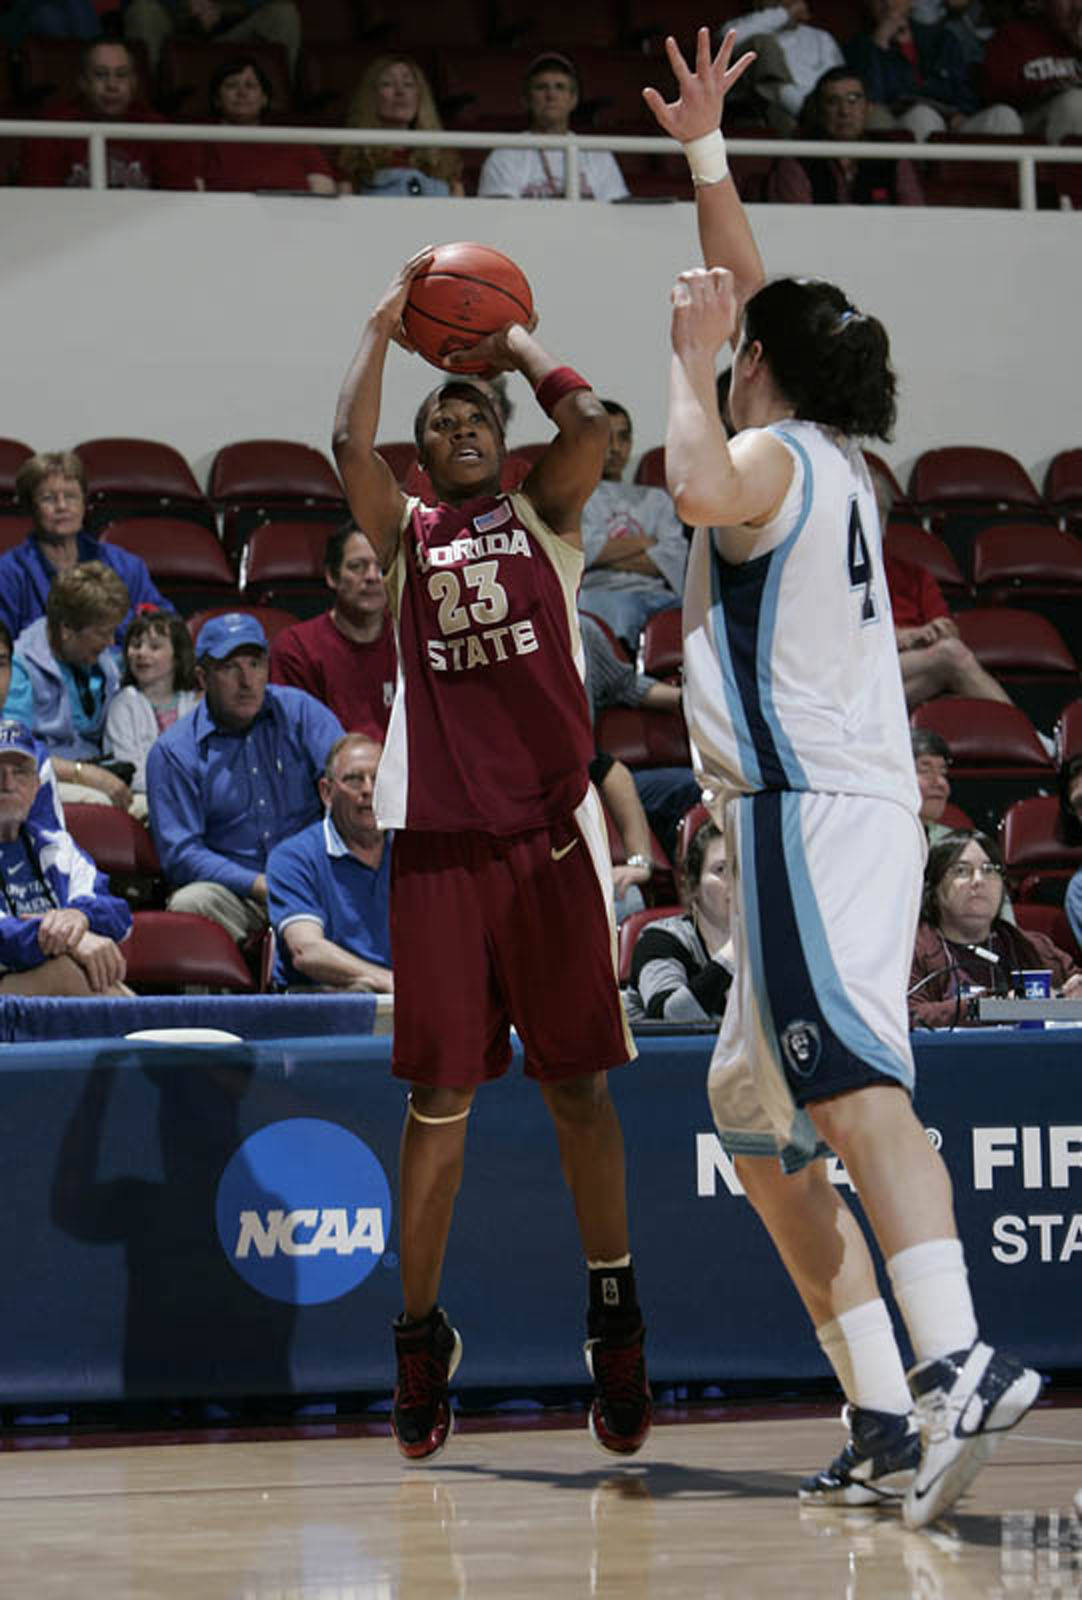 Alicia Gladden had 18 points and with two steals, became FSU's all-time leader in steals.